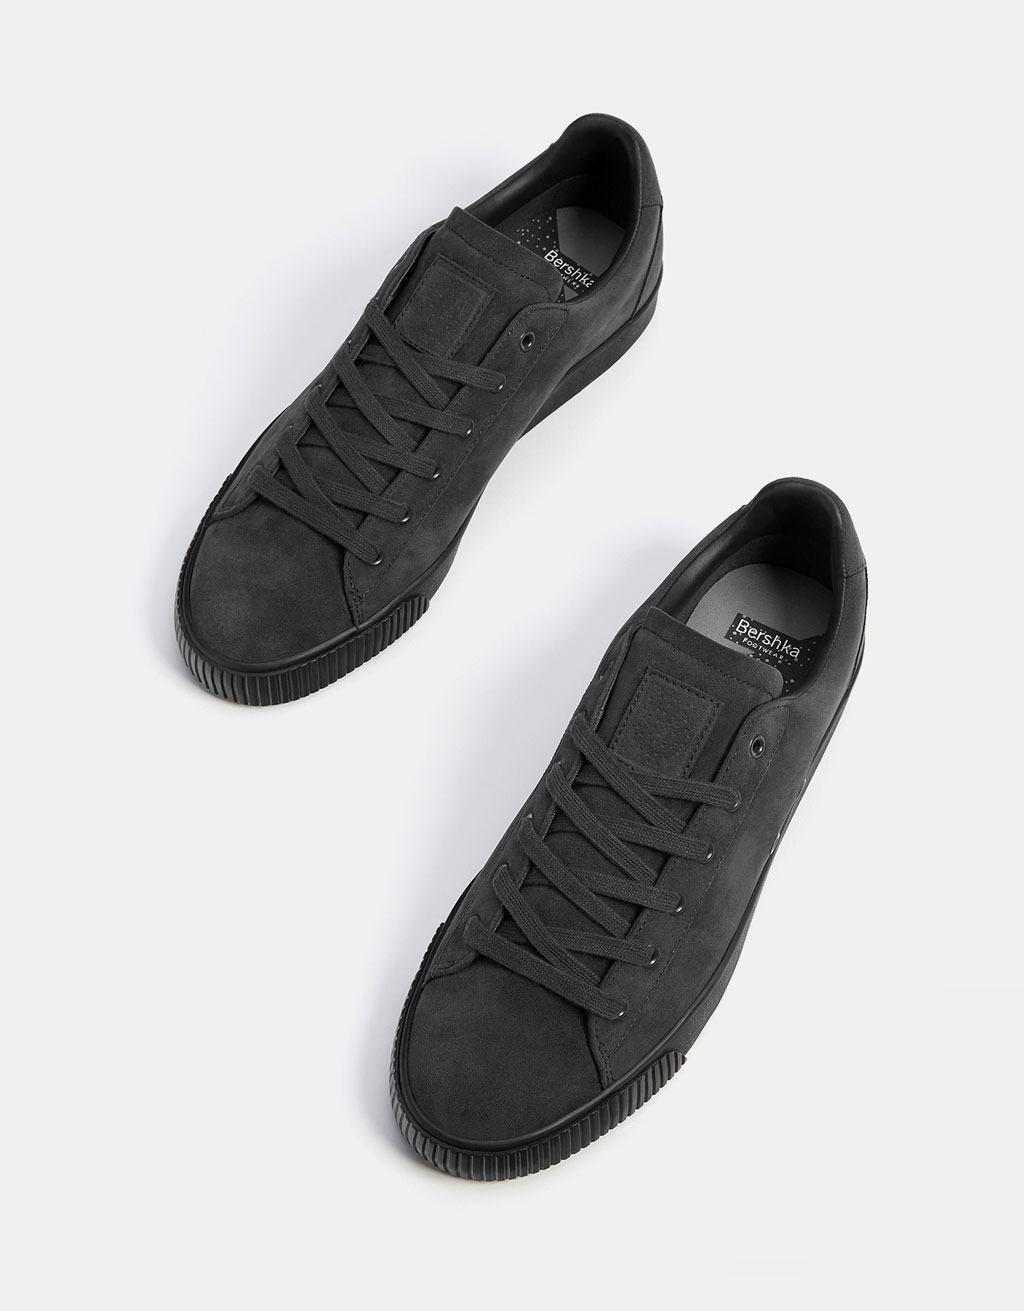 Men's monochrome fabric sneakers